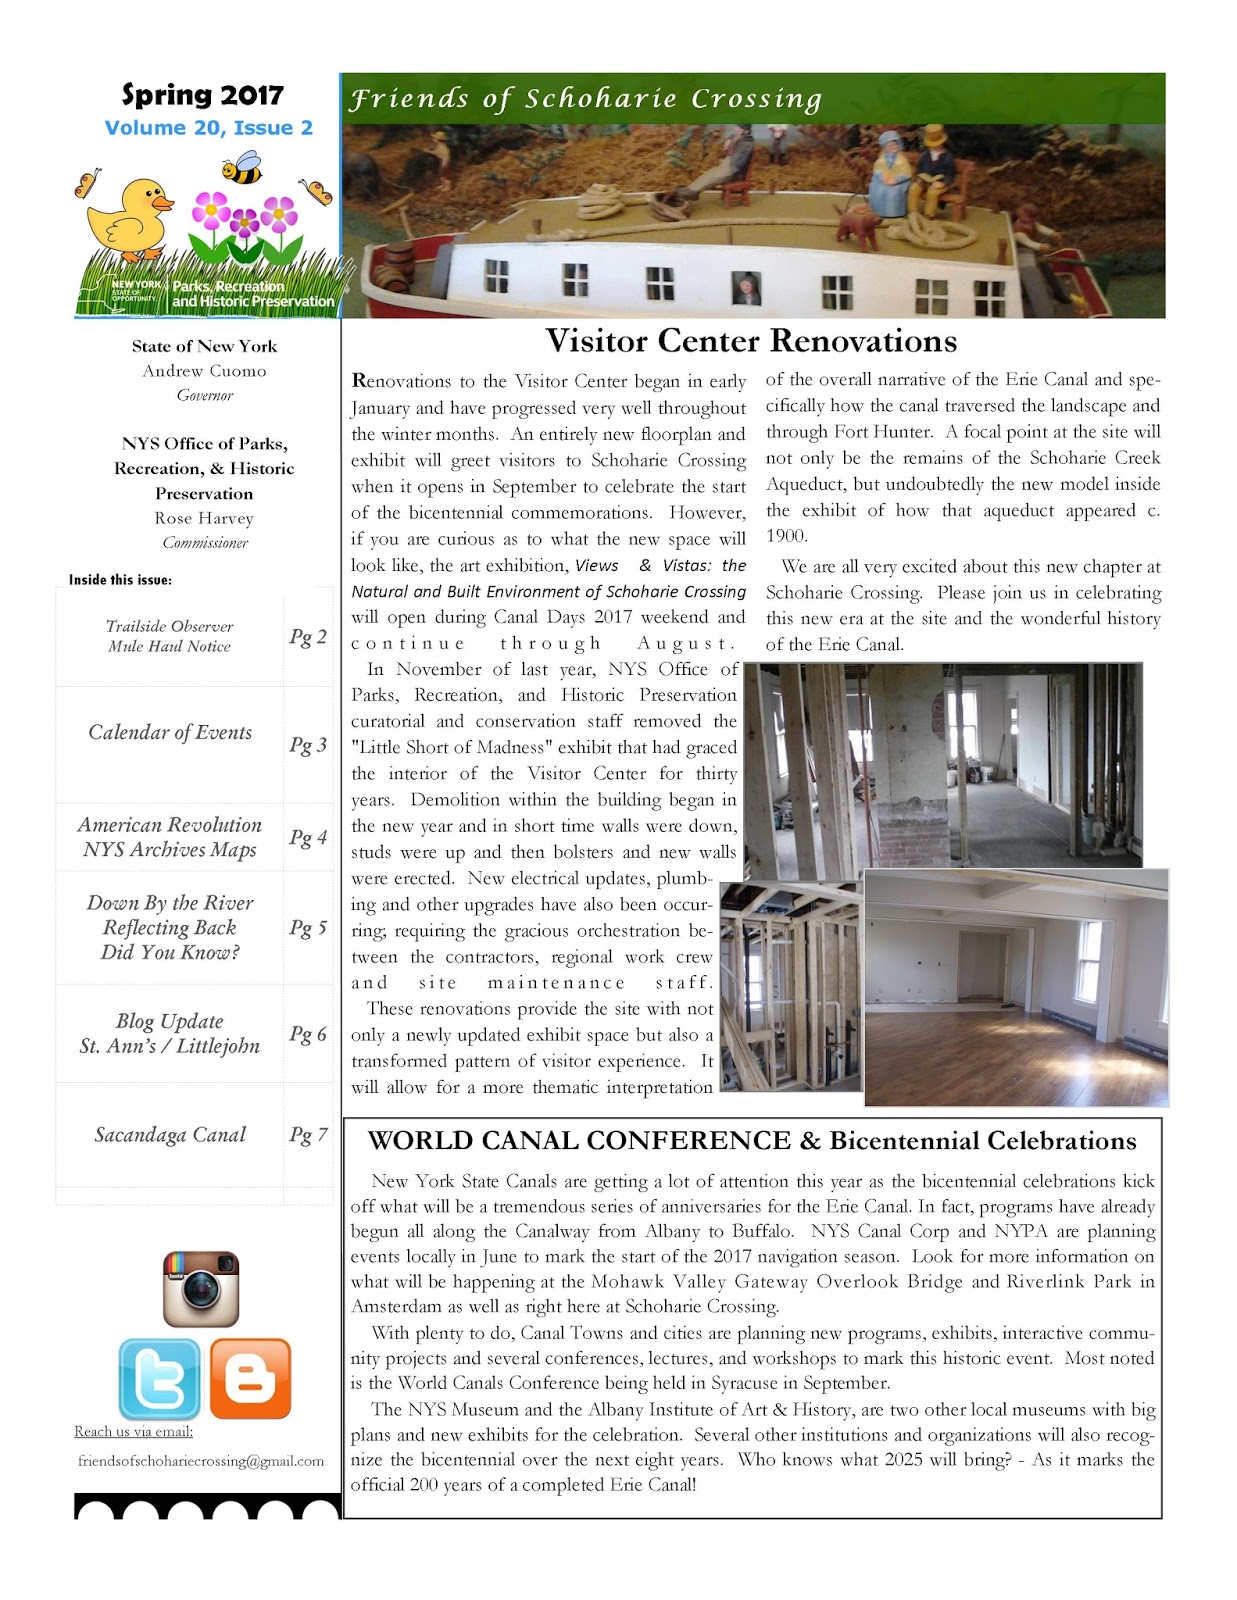 Friends of schoharie crossing spring 2017 newsletter view in pdf by clicking here sciox Images